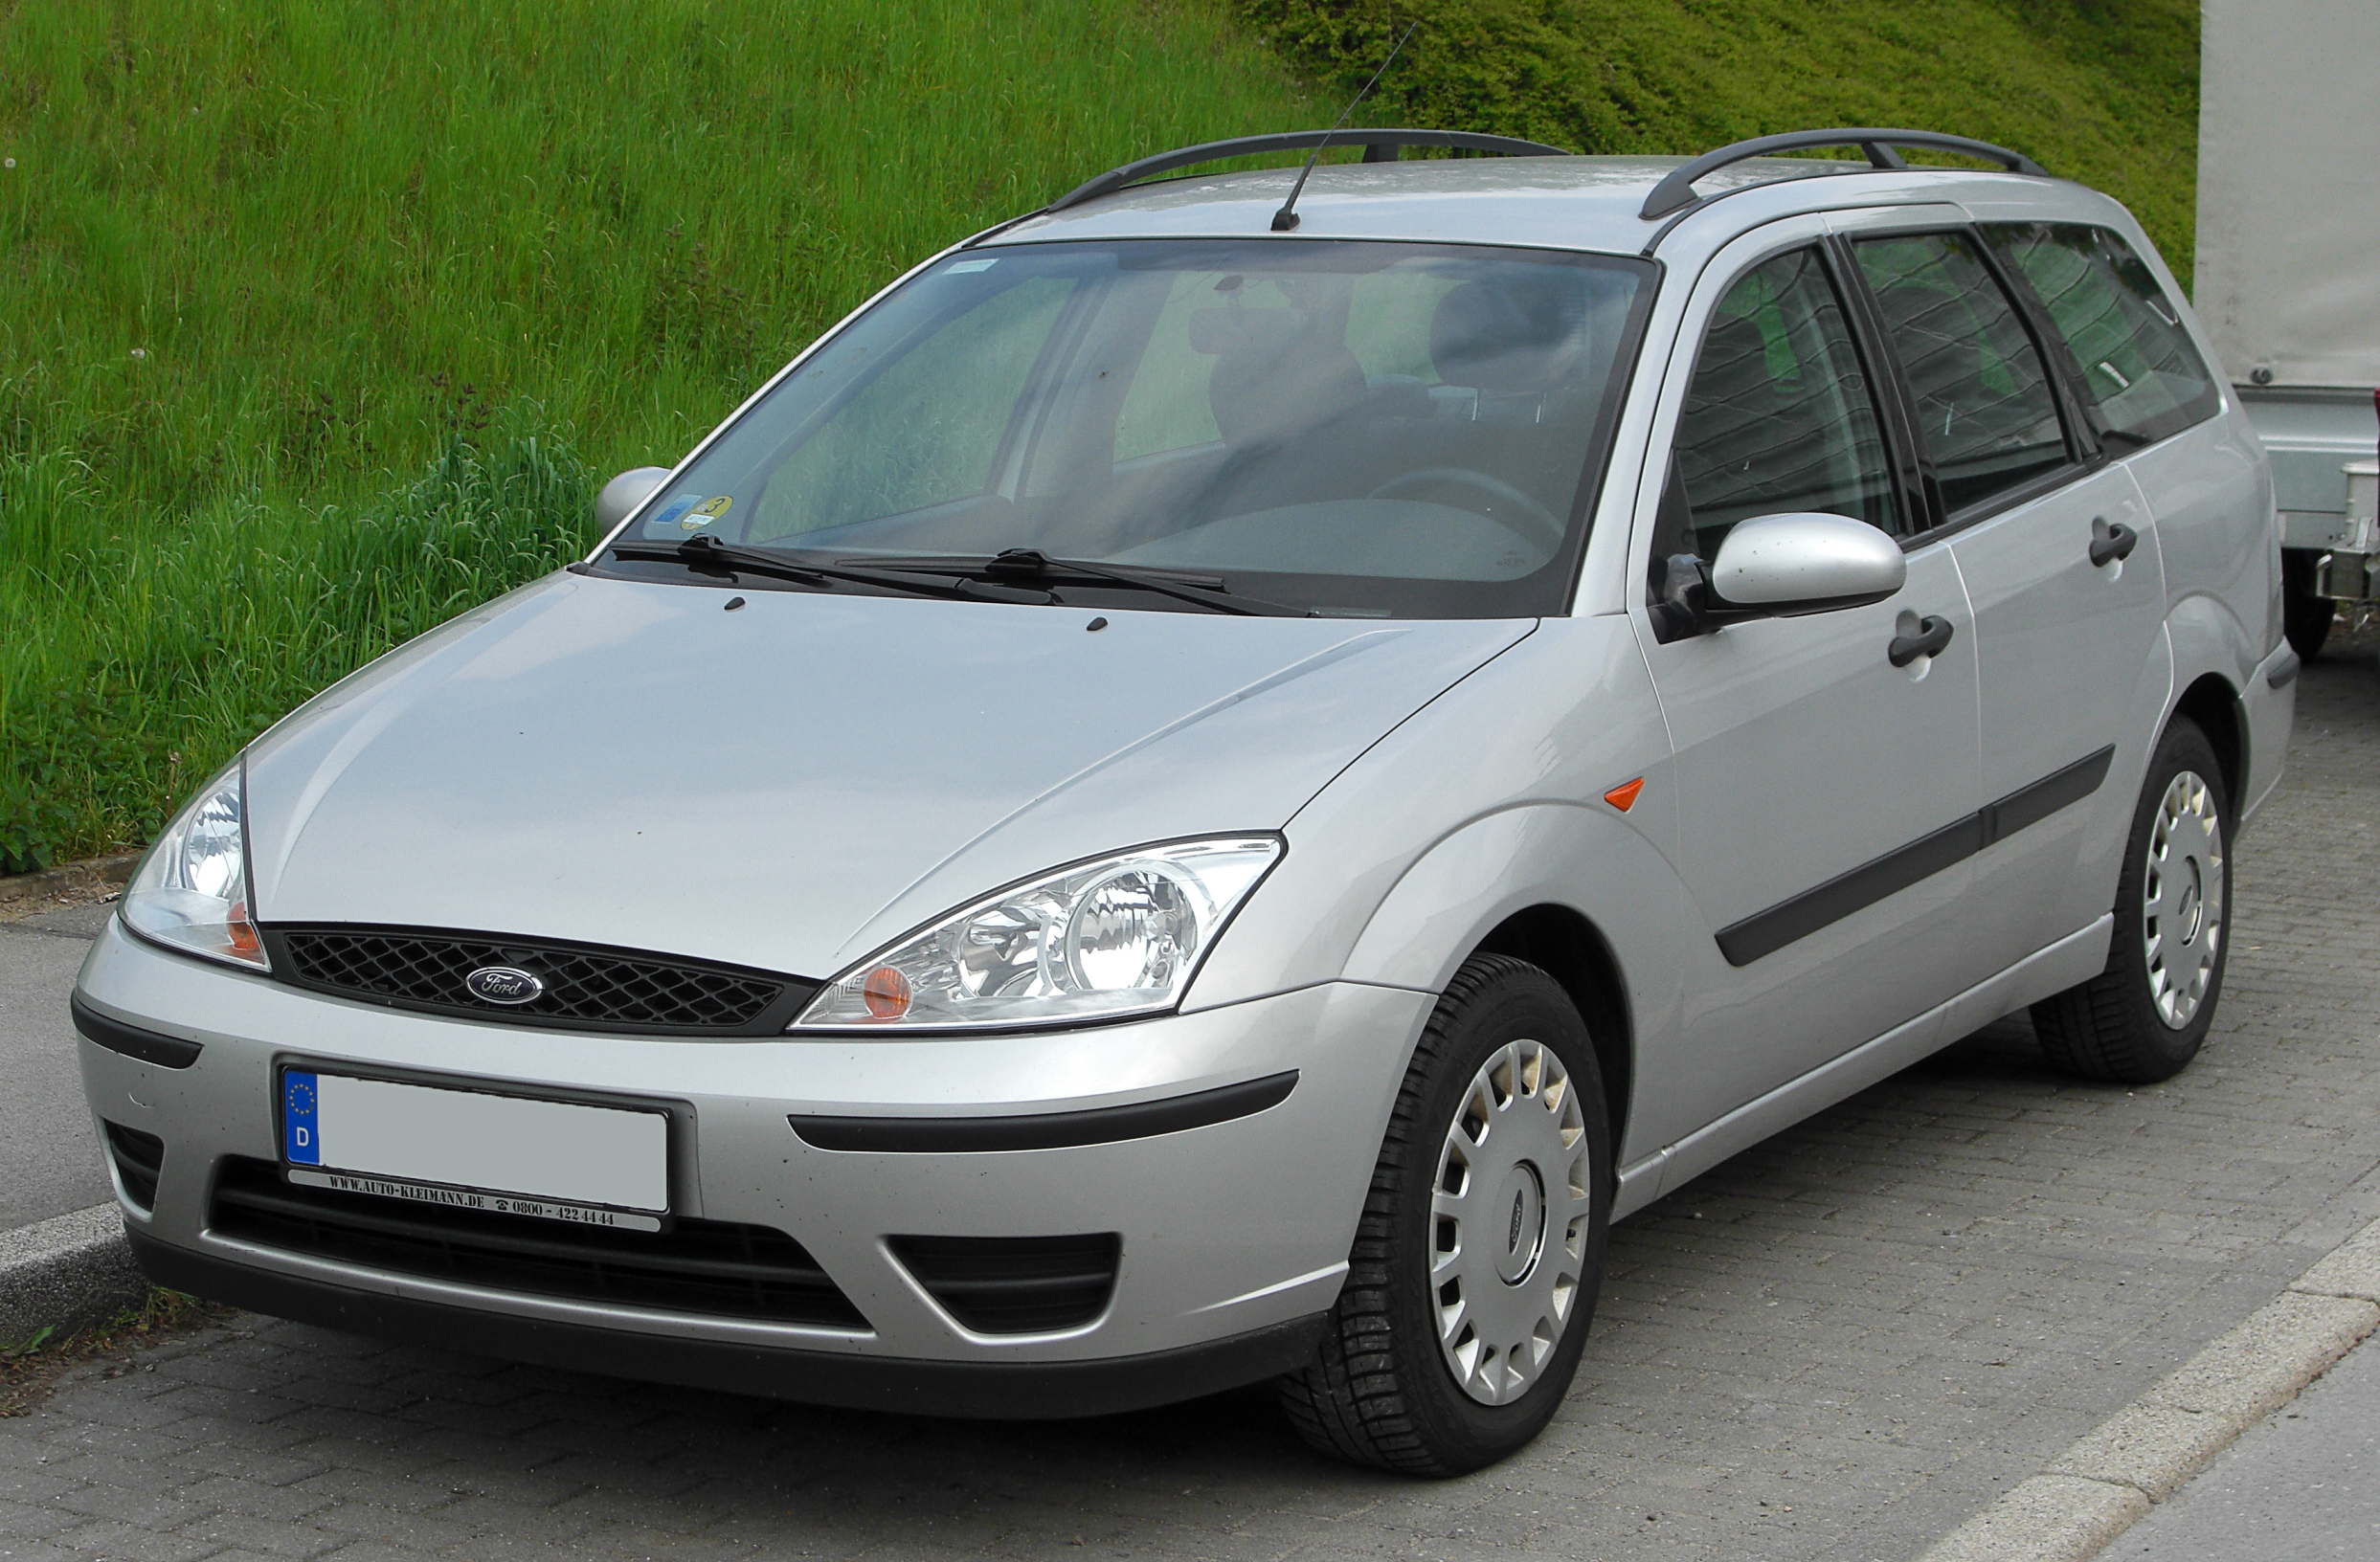 2008 ford focus wagon ii pictures information and specs. Black Bedroom Furniture Sets. Home Design Ideas